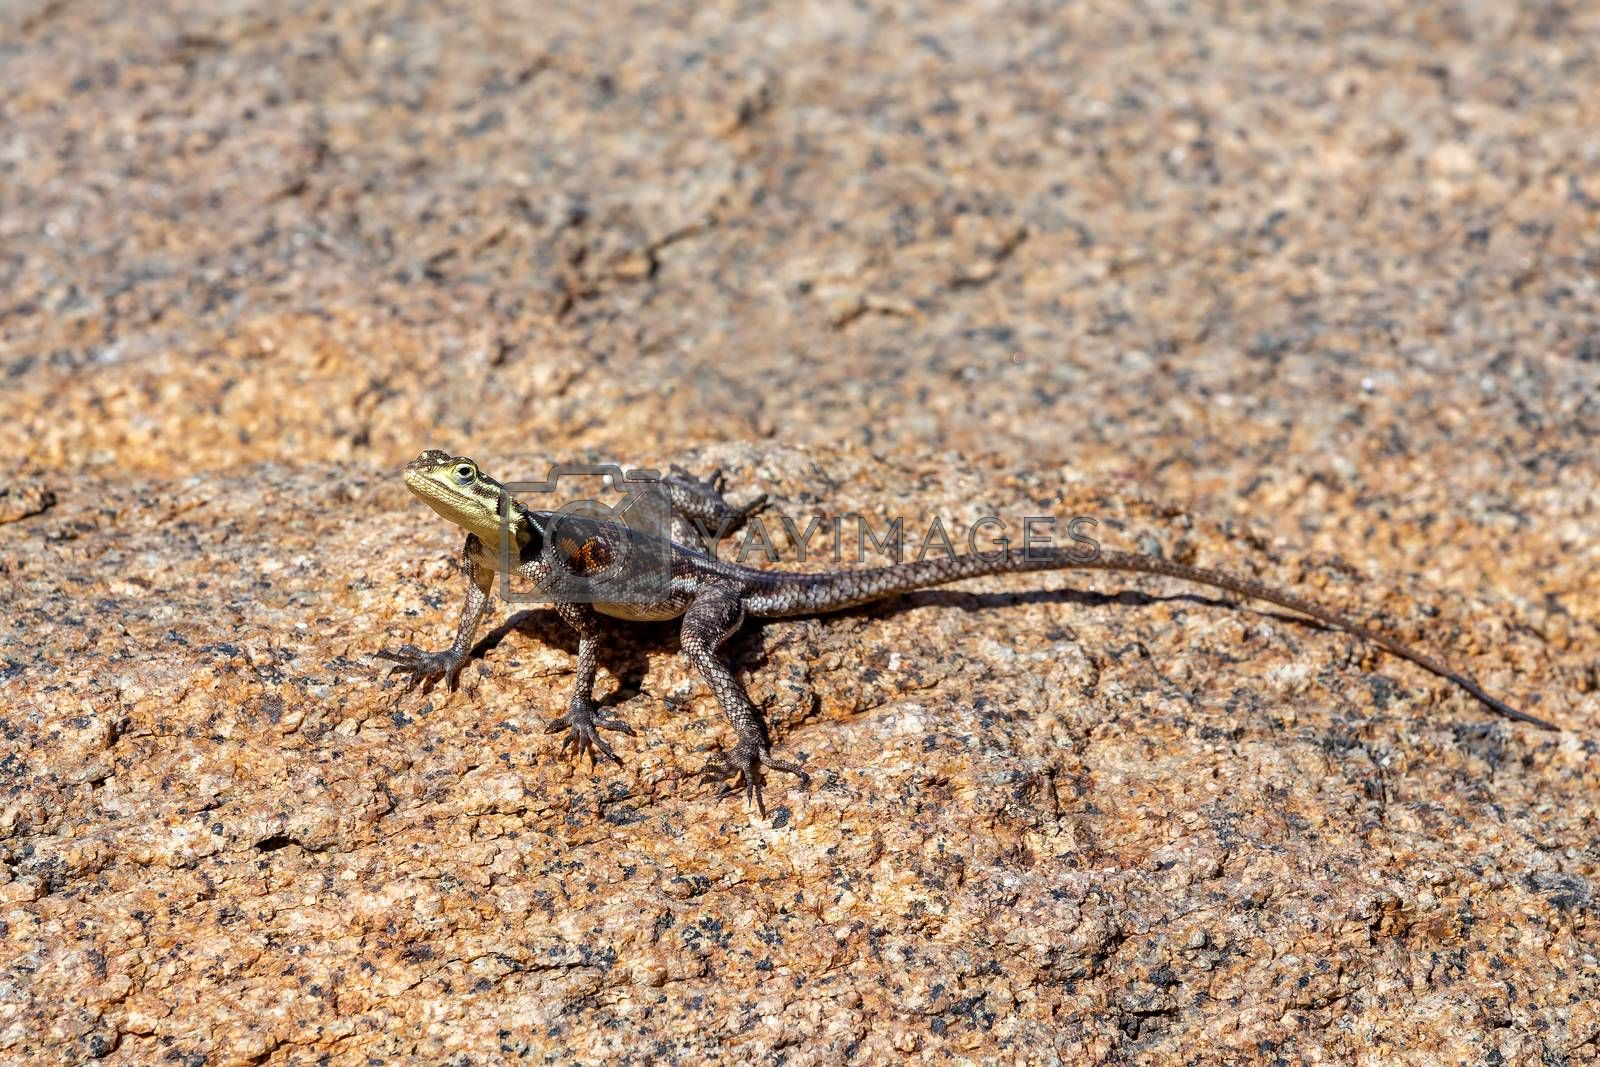 Namib rock agama, Agama planiceps, is heating up in the sun in the white lady brandberg Mountains, Namibia Africa wildlife